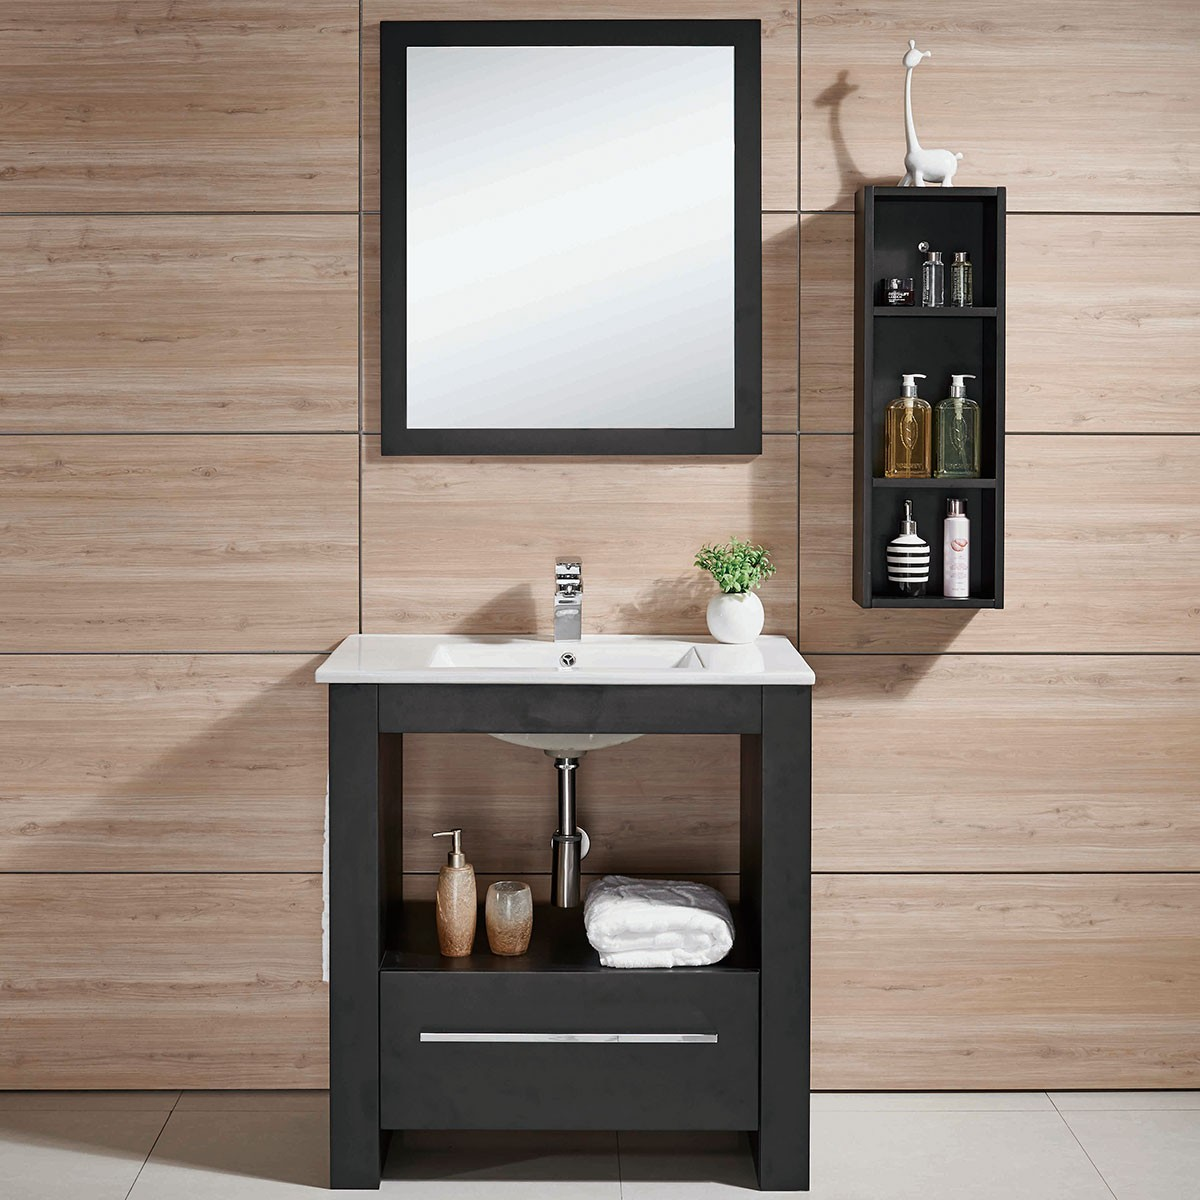 24 In. Freestanding Bathroom Vanity Set With Single Sink And Mirror And  Cabinet (DK